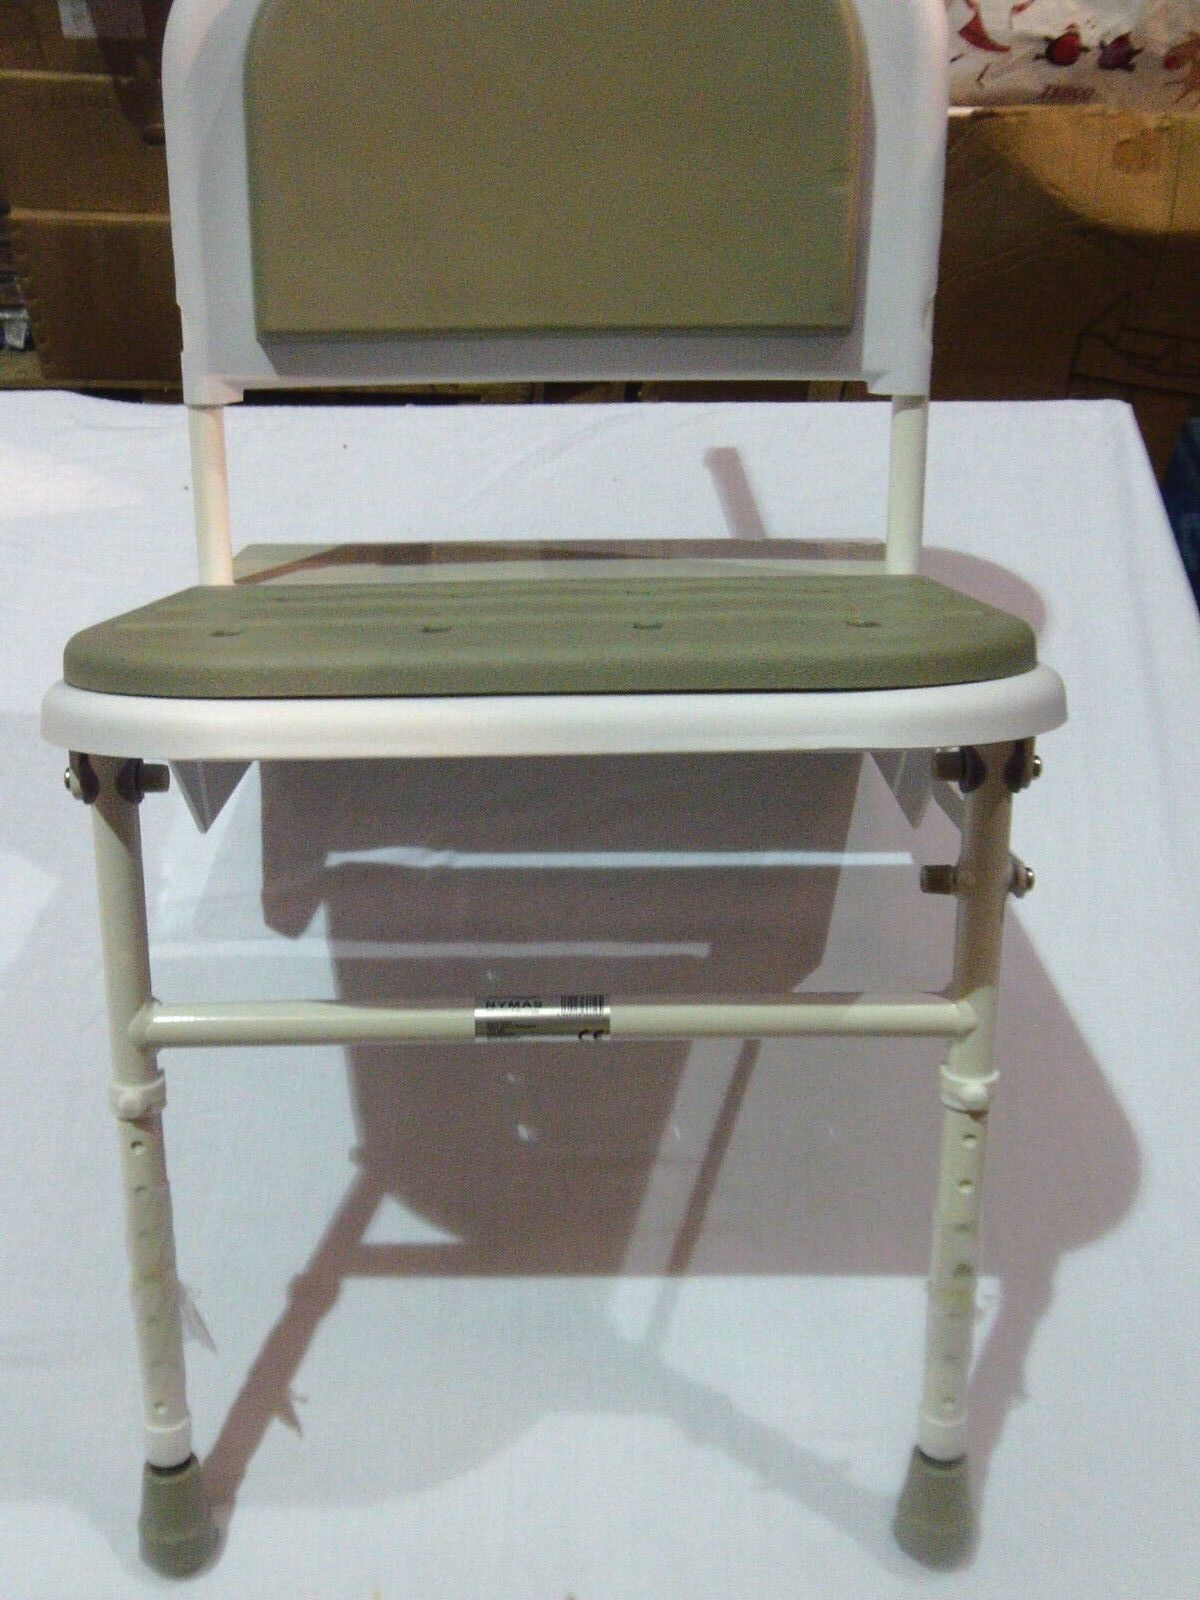 Nymas DOC M Compliant Folding Shower Seat blanc with gris Pads sb-085 gy